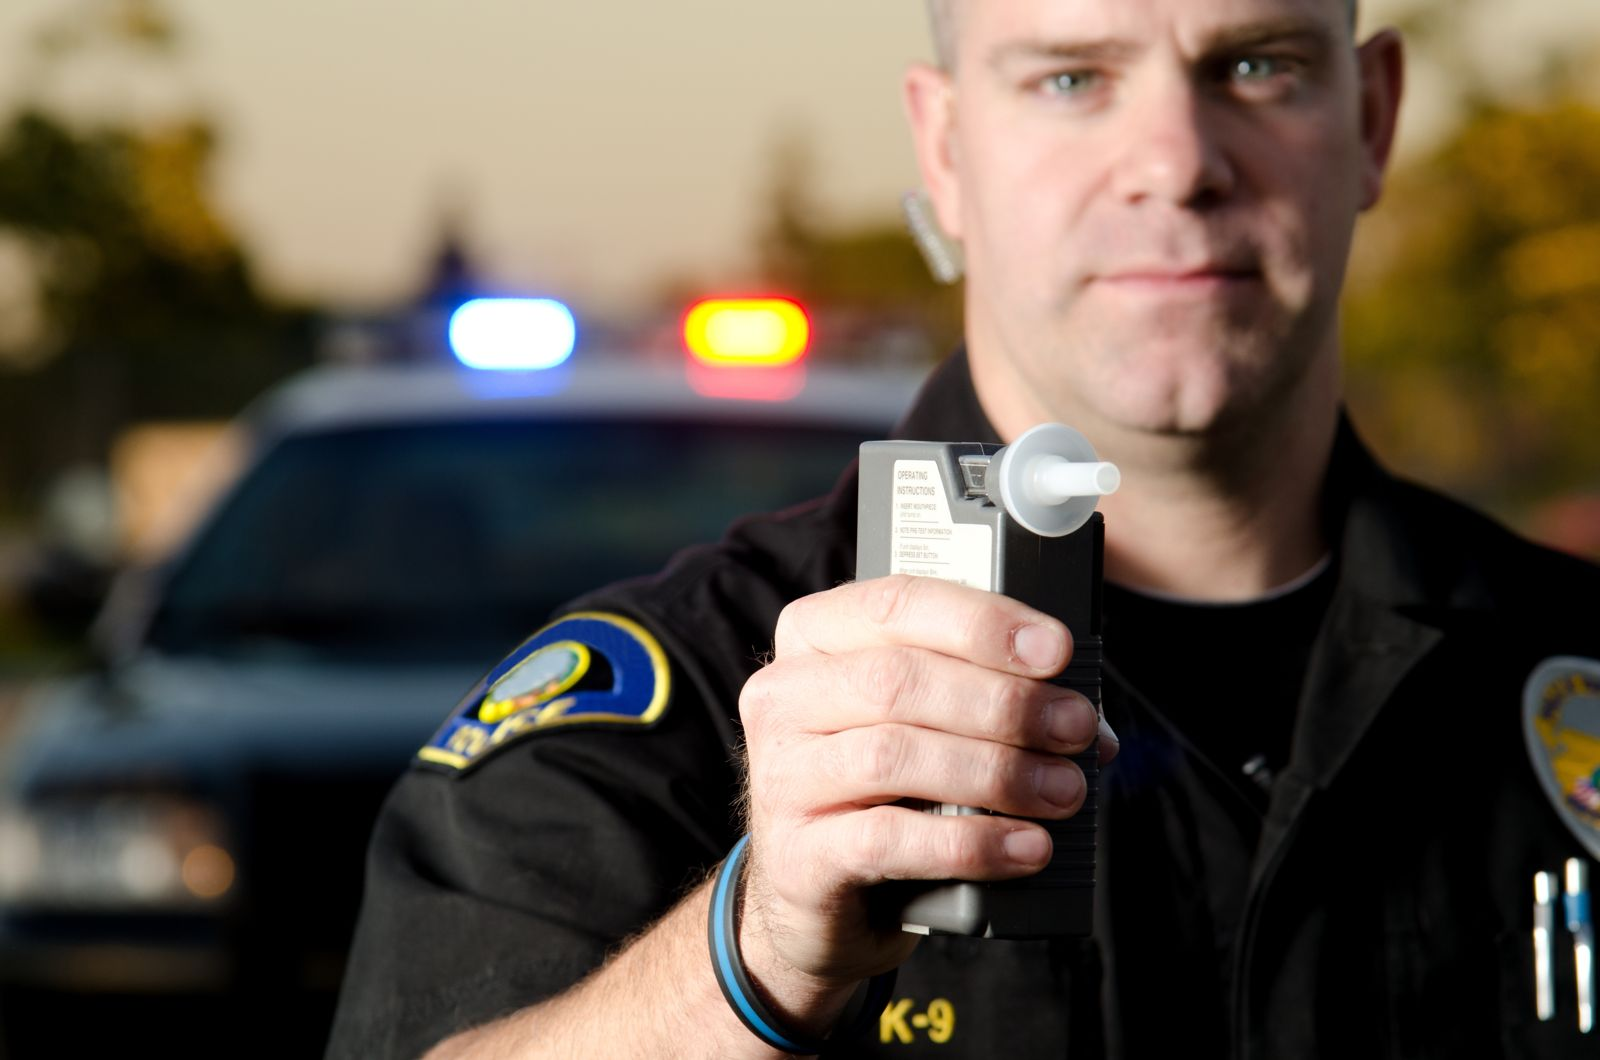 A police officer holds out a breathalyzer to test someone as part of a DUI arrest. His police car with lights on is behind him.